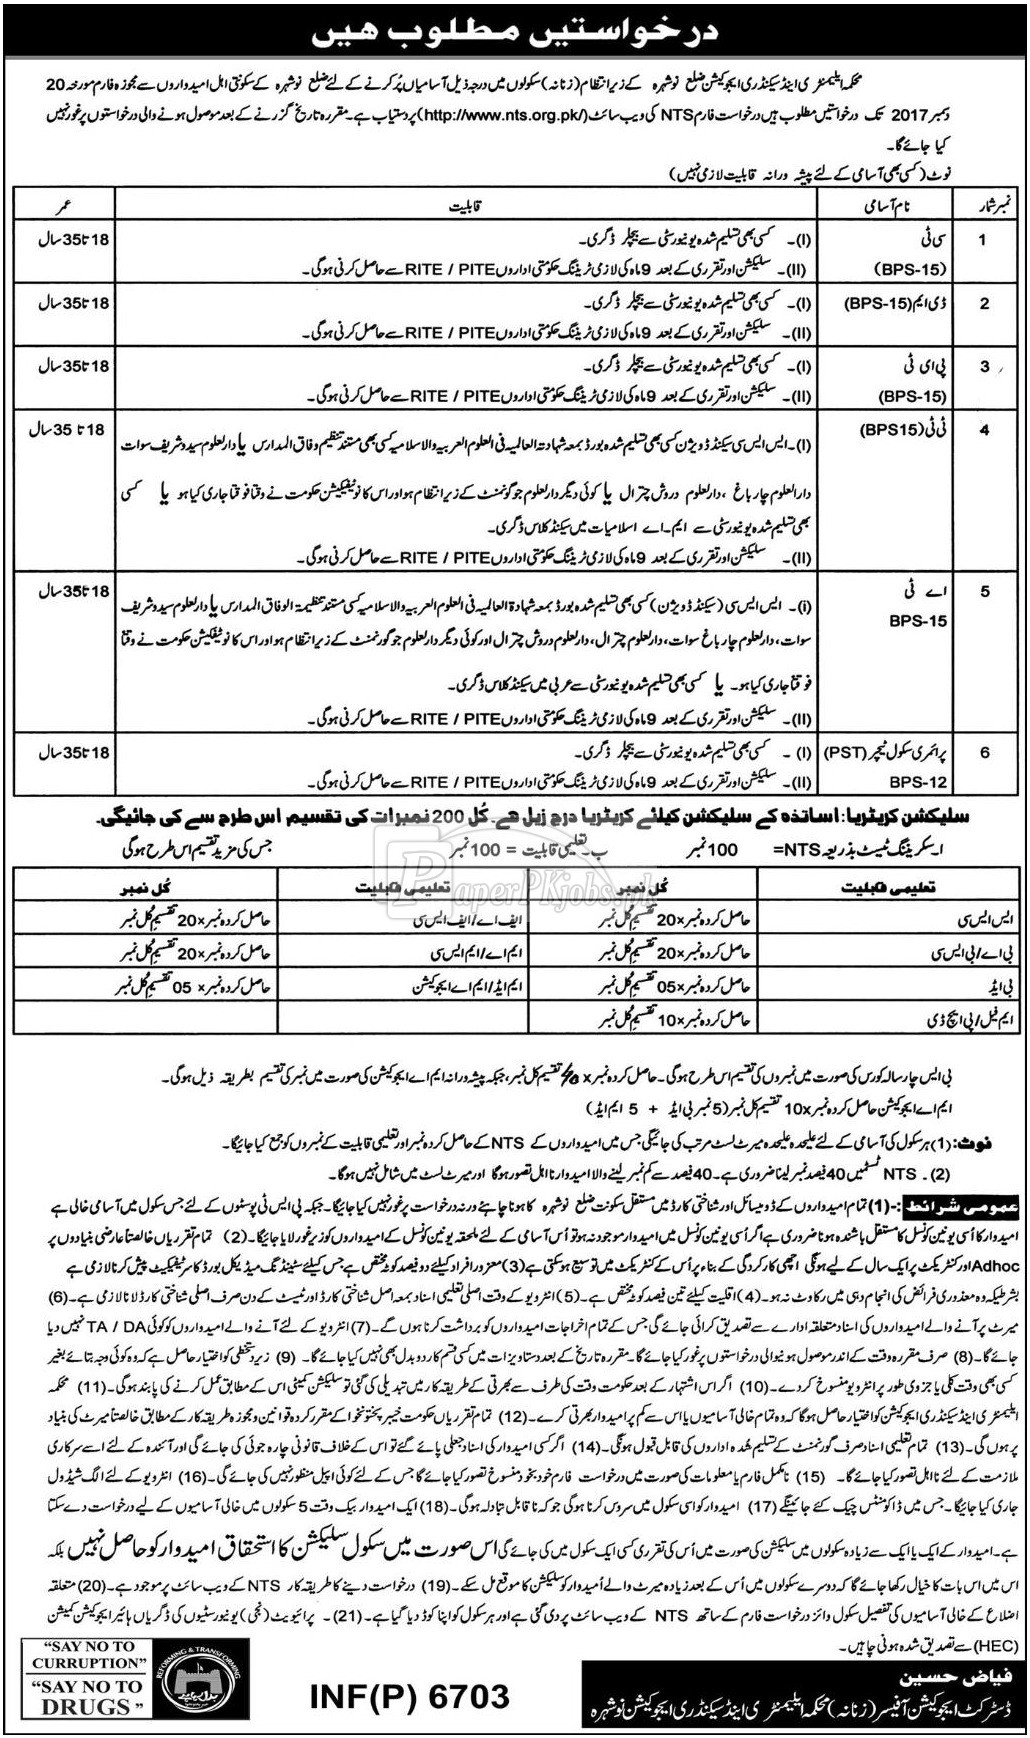 Elementary & Secondary Education Department ESED Nowshera NTS Jobs 2017